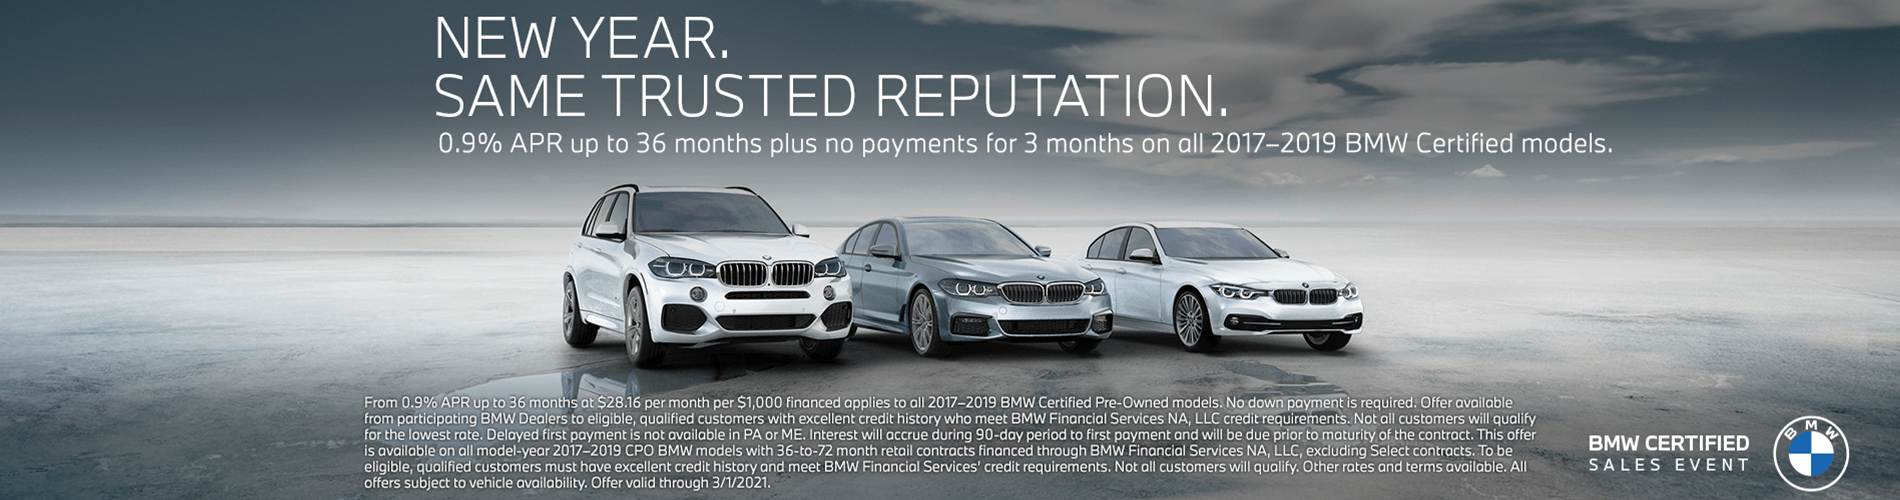 0.9% APR for 36 months plus no payments for 3 months